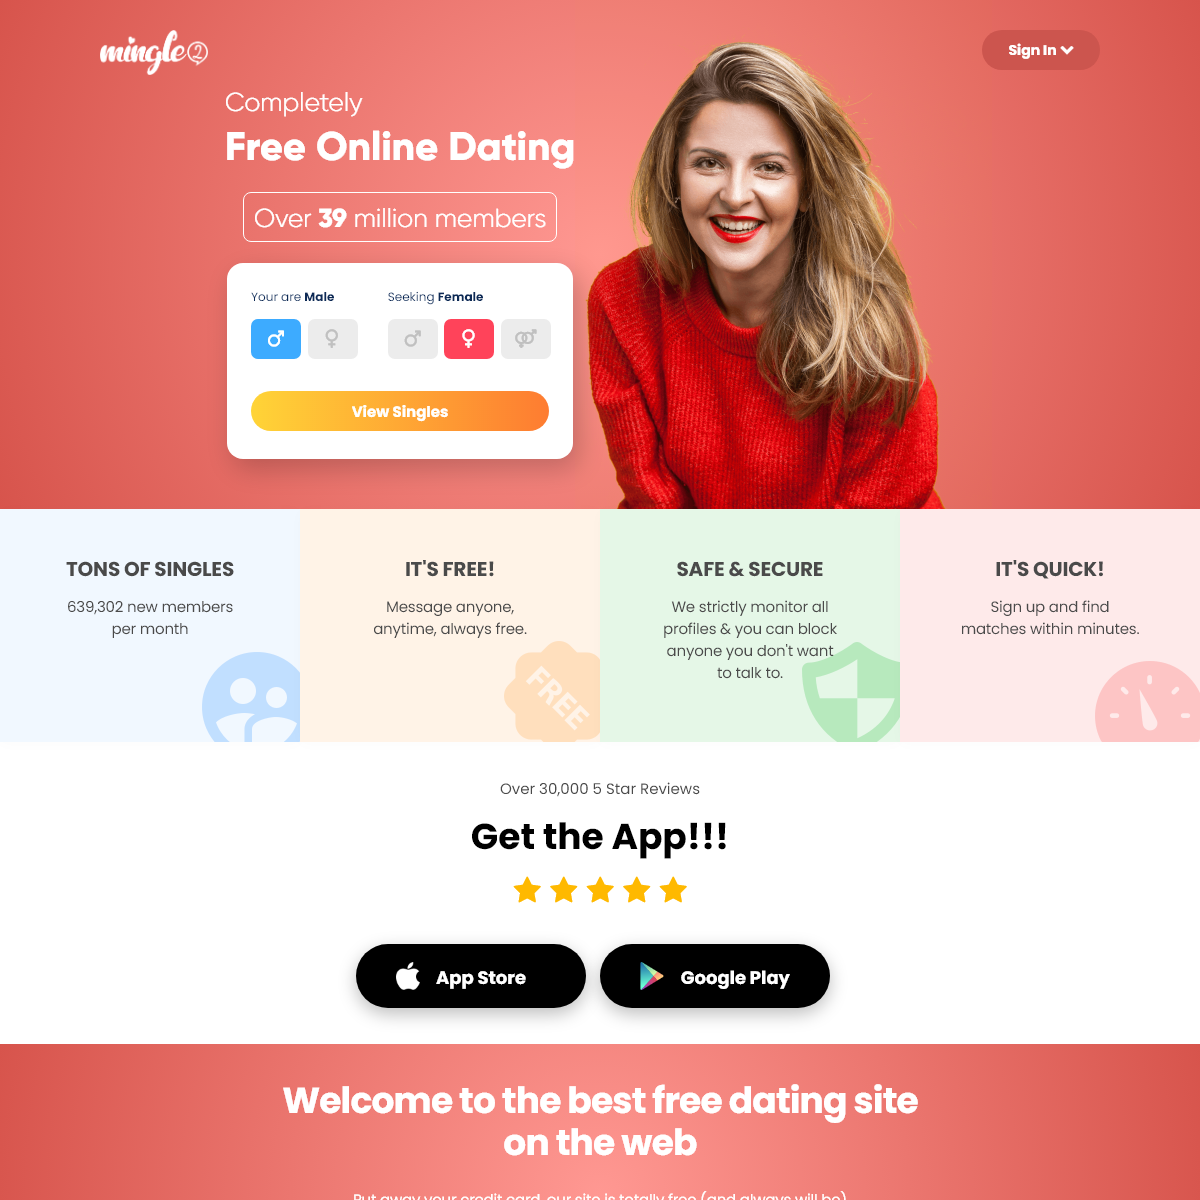 Free Online Dating Site & Chat App For Singles - Mingle2